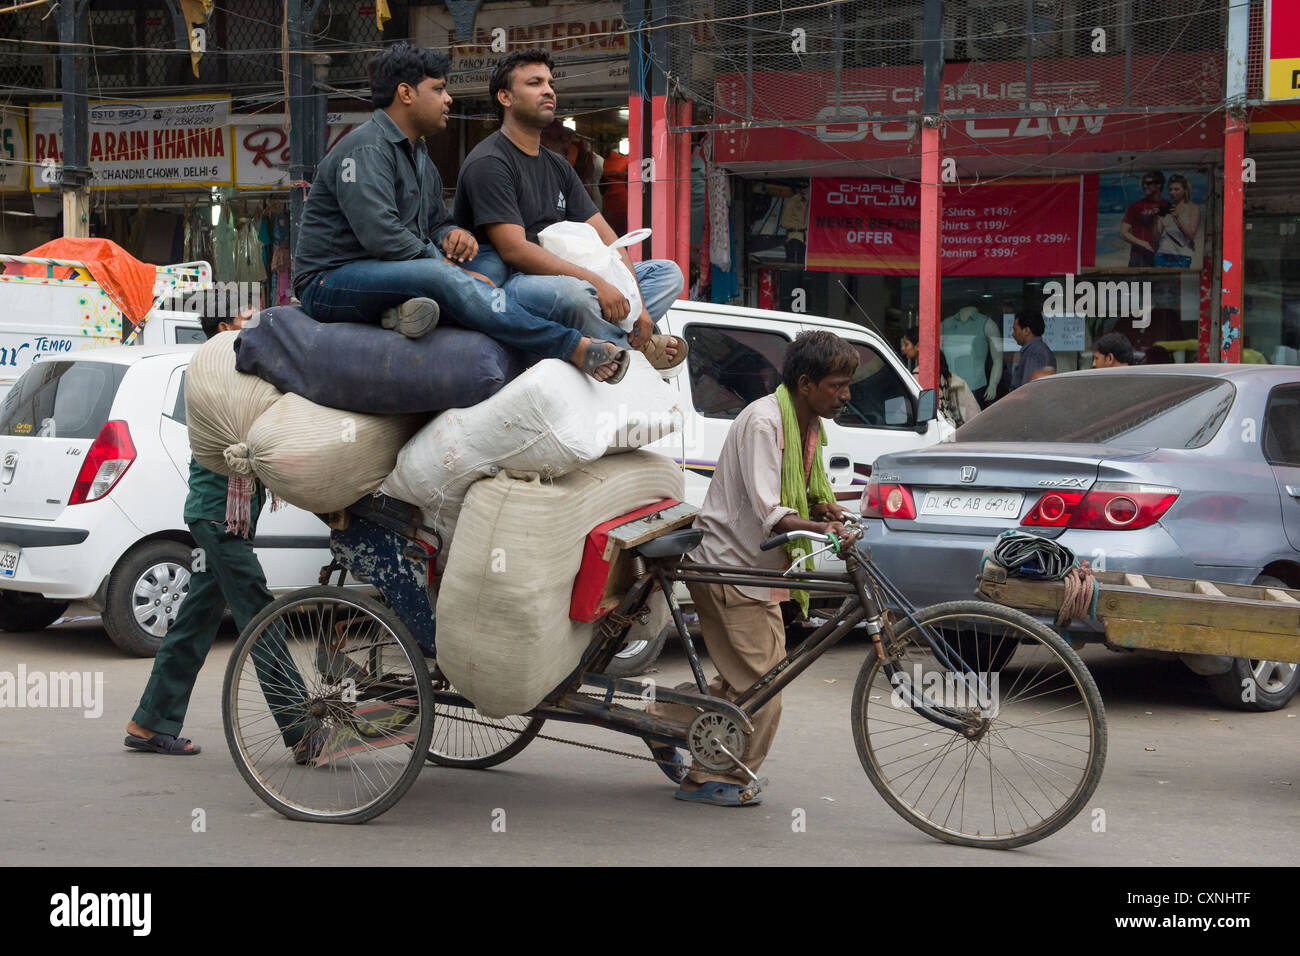 Two young affluent men sitting on top of sacks on an overloaded cycle rickshaw, Chandni Chowk, Old Delhi, India - Stock Image